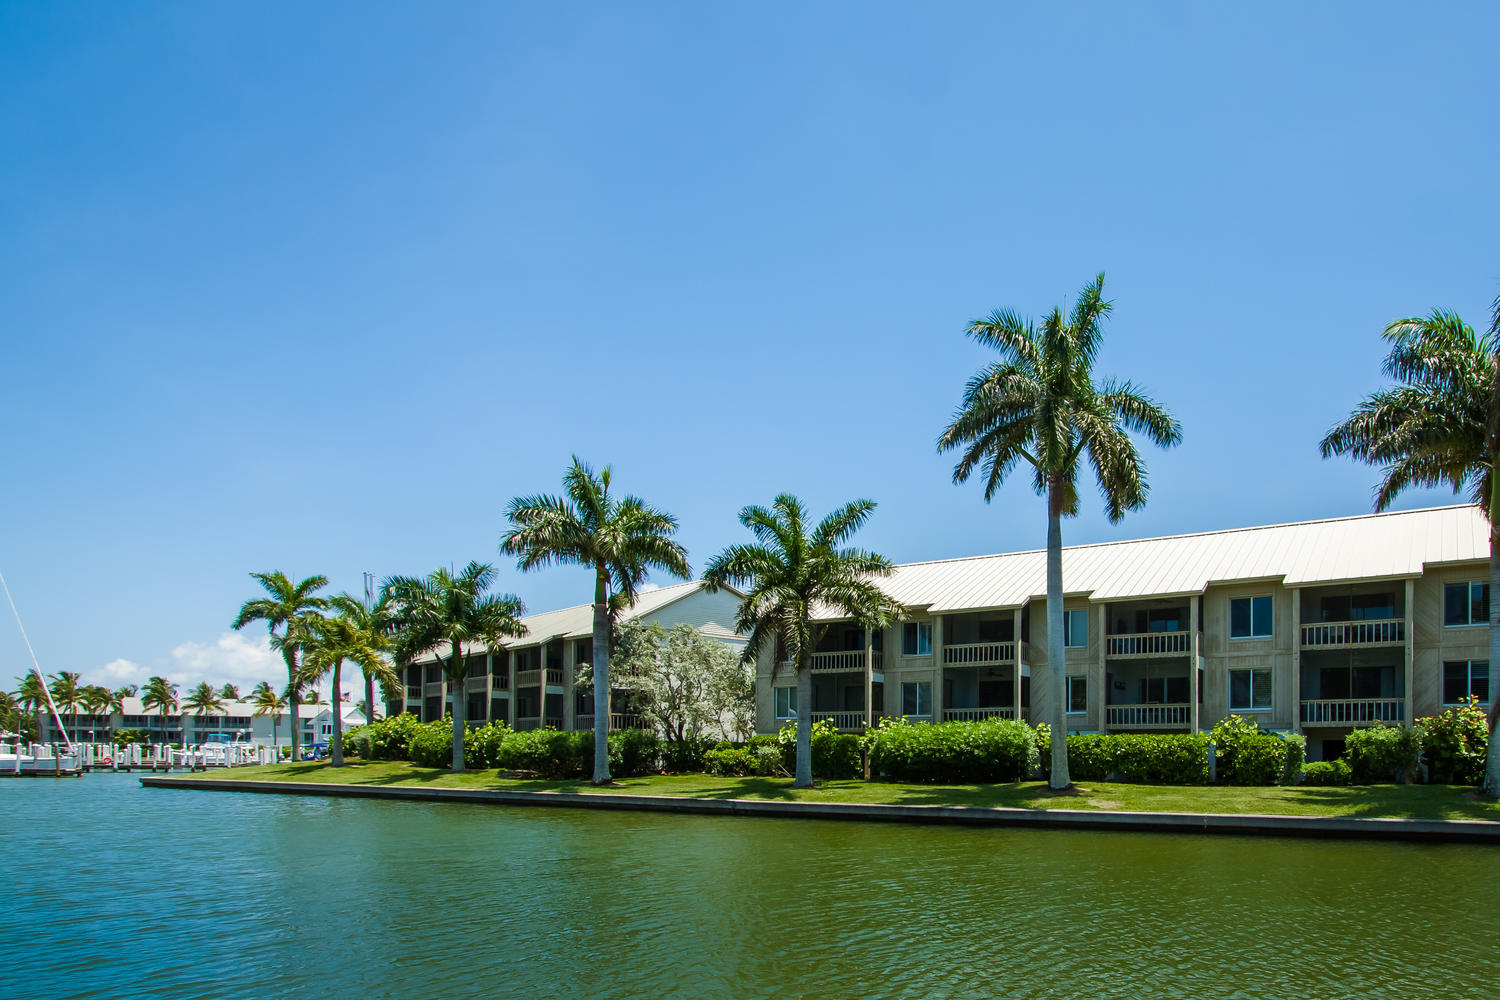 View of the Exterior Building of 708 Marina Villa at South Seas Island Resort, in Captiva Island Florida